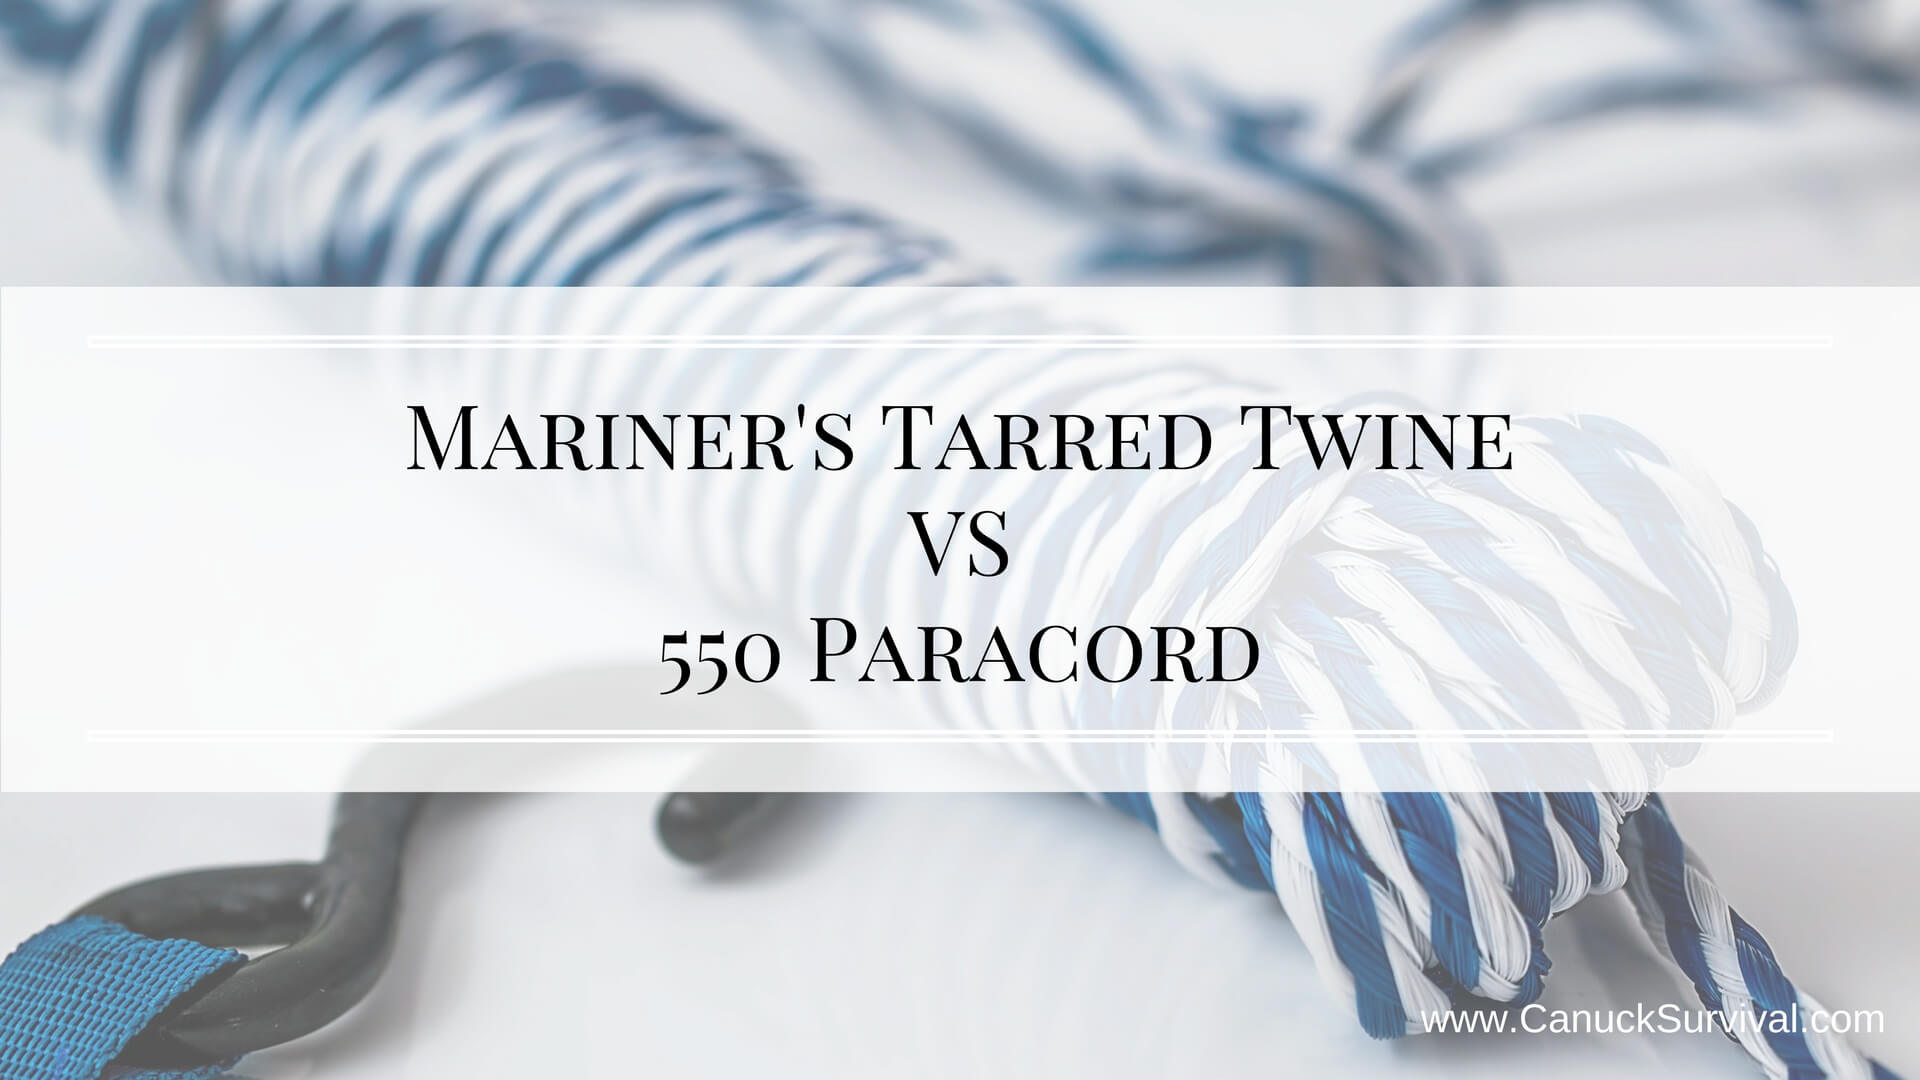 Mariner's Tarred Twine VS 550 Paracord